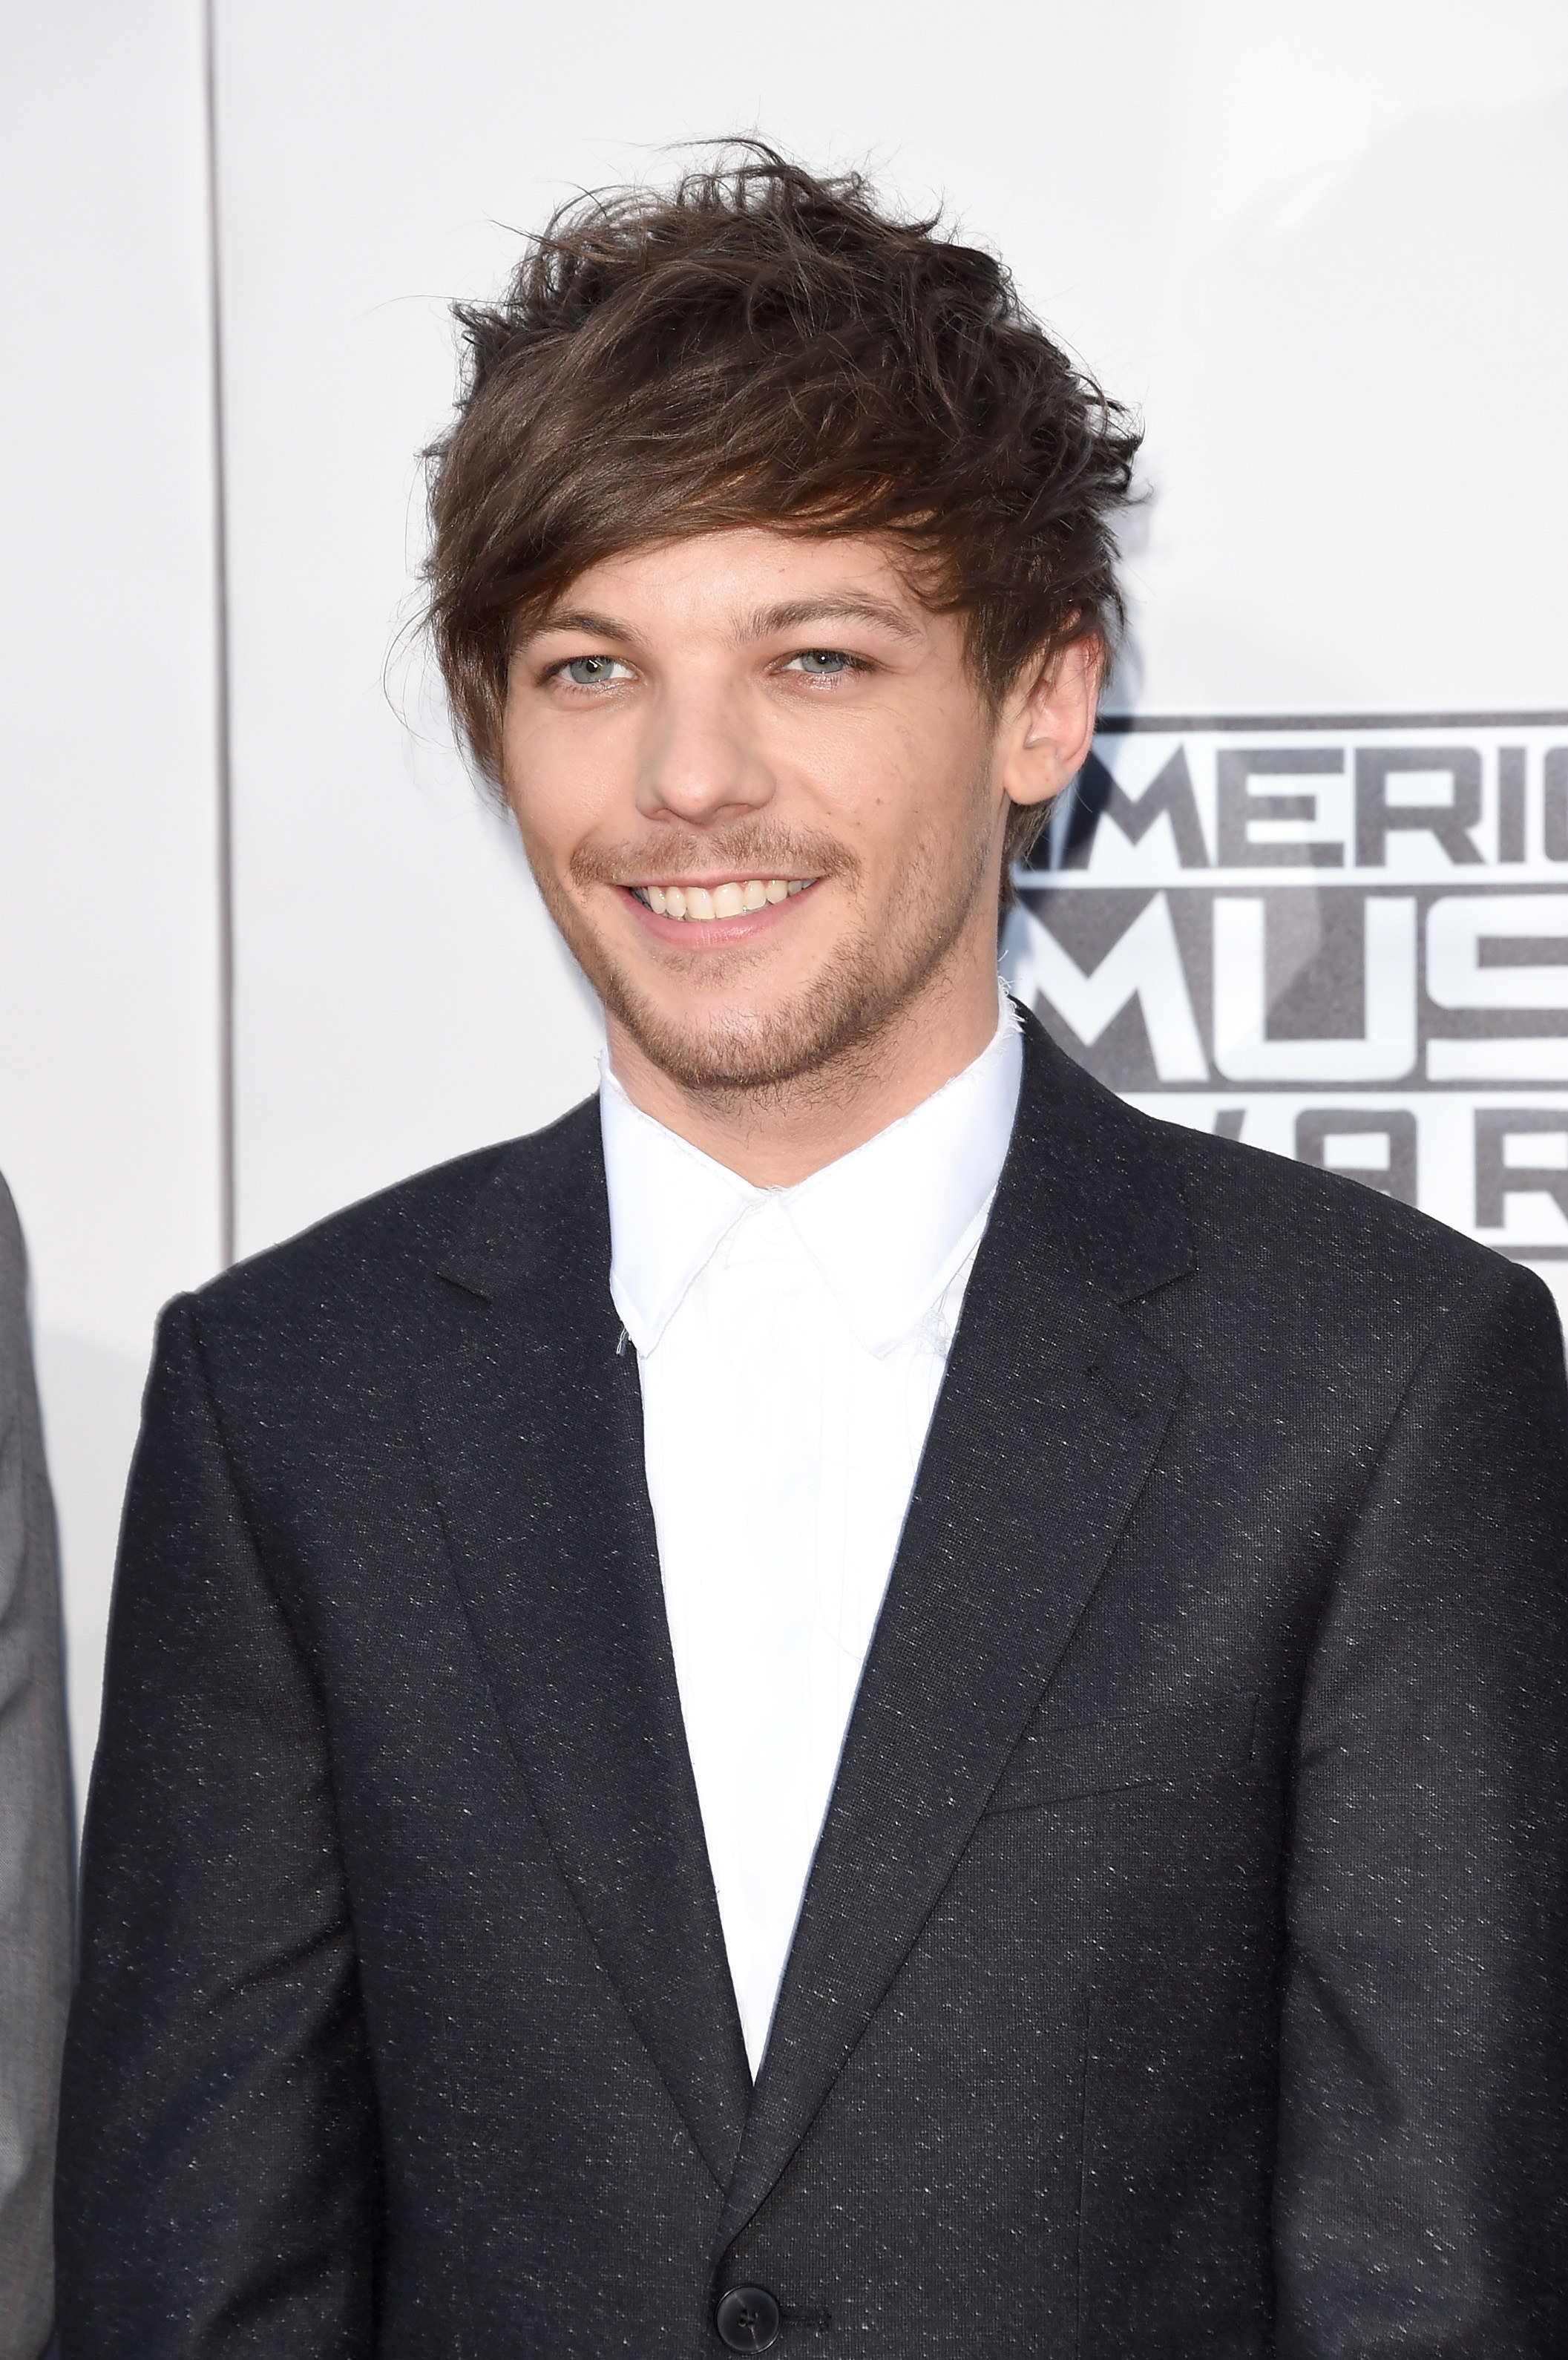 Louis Tomlinson attending the American Music Awards in 2015